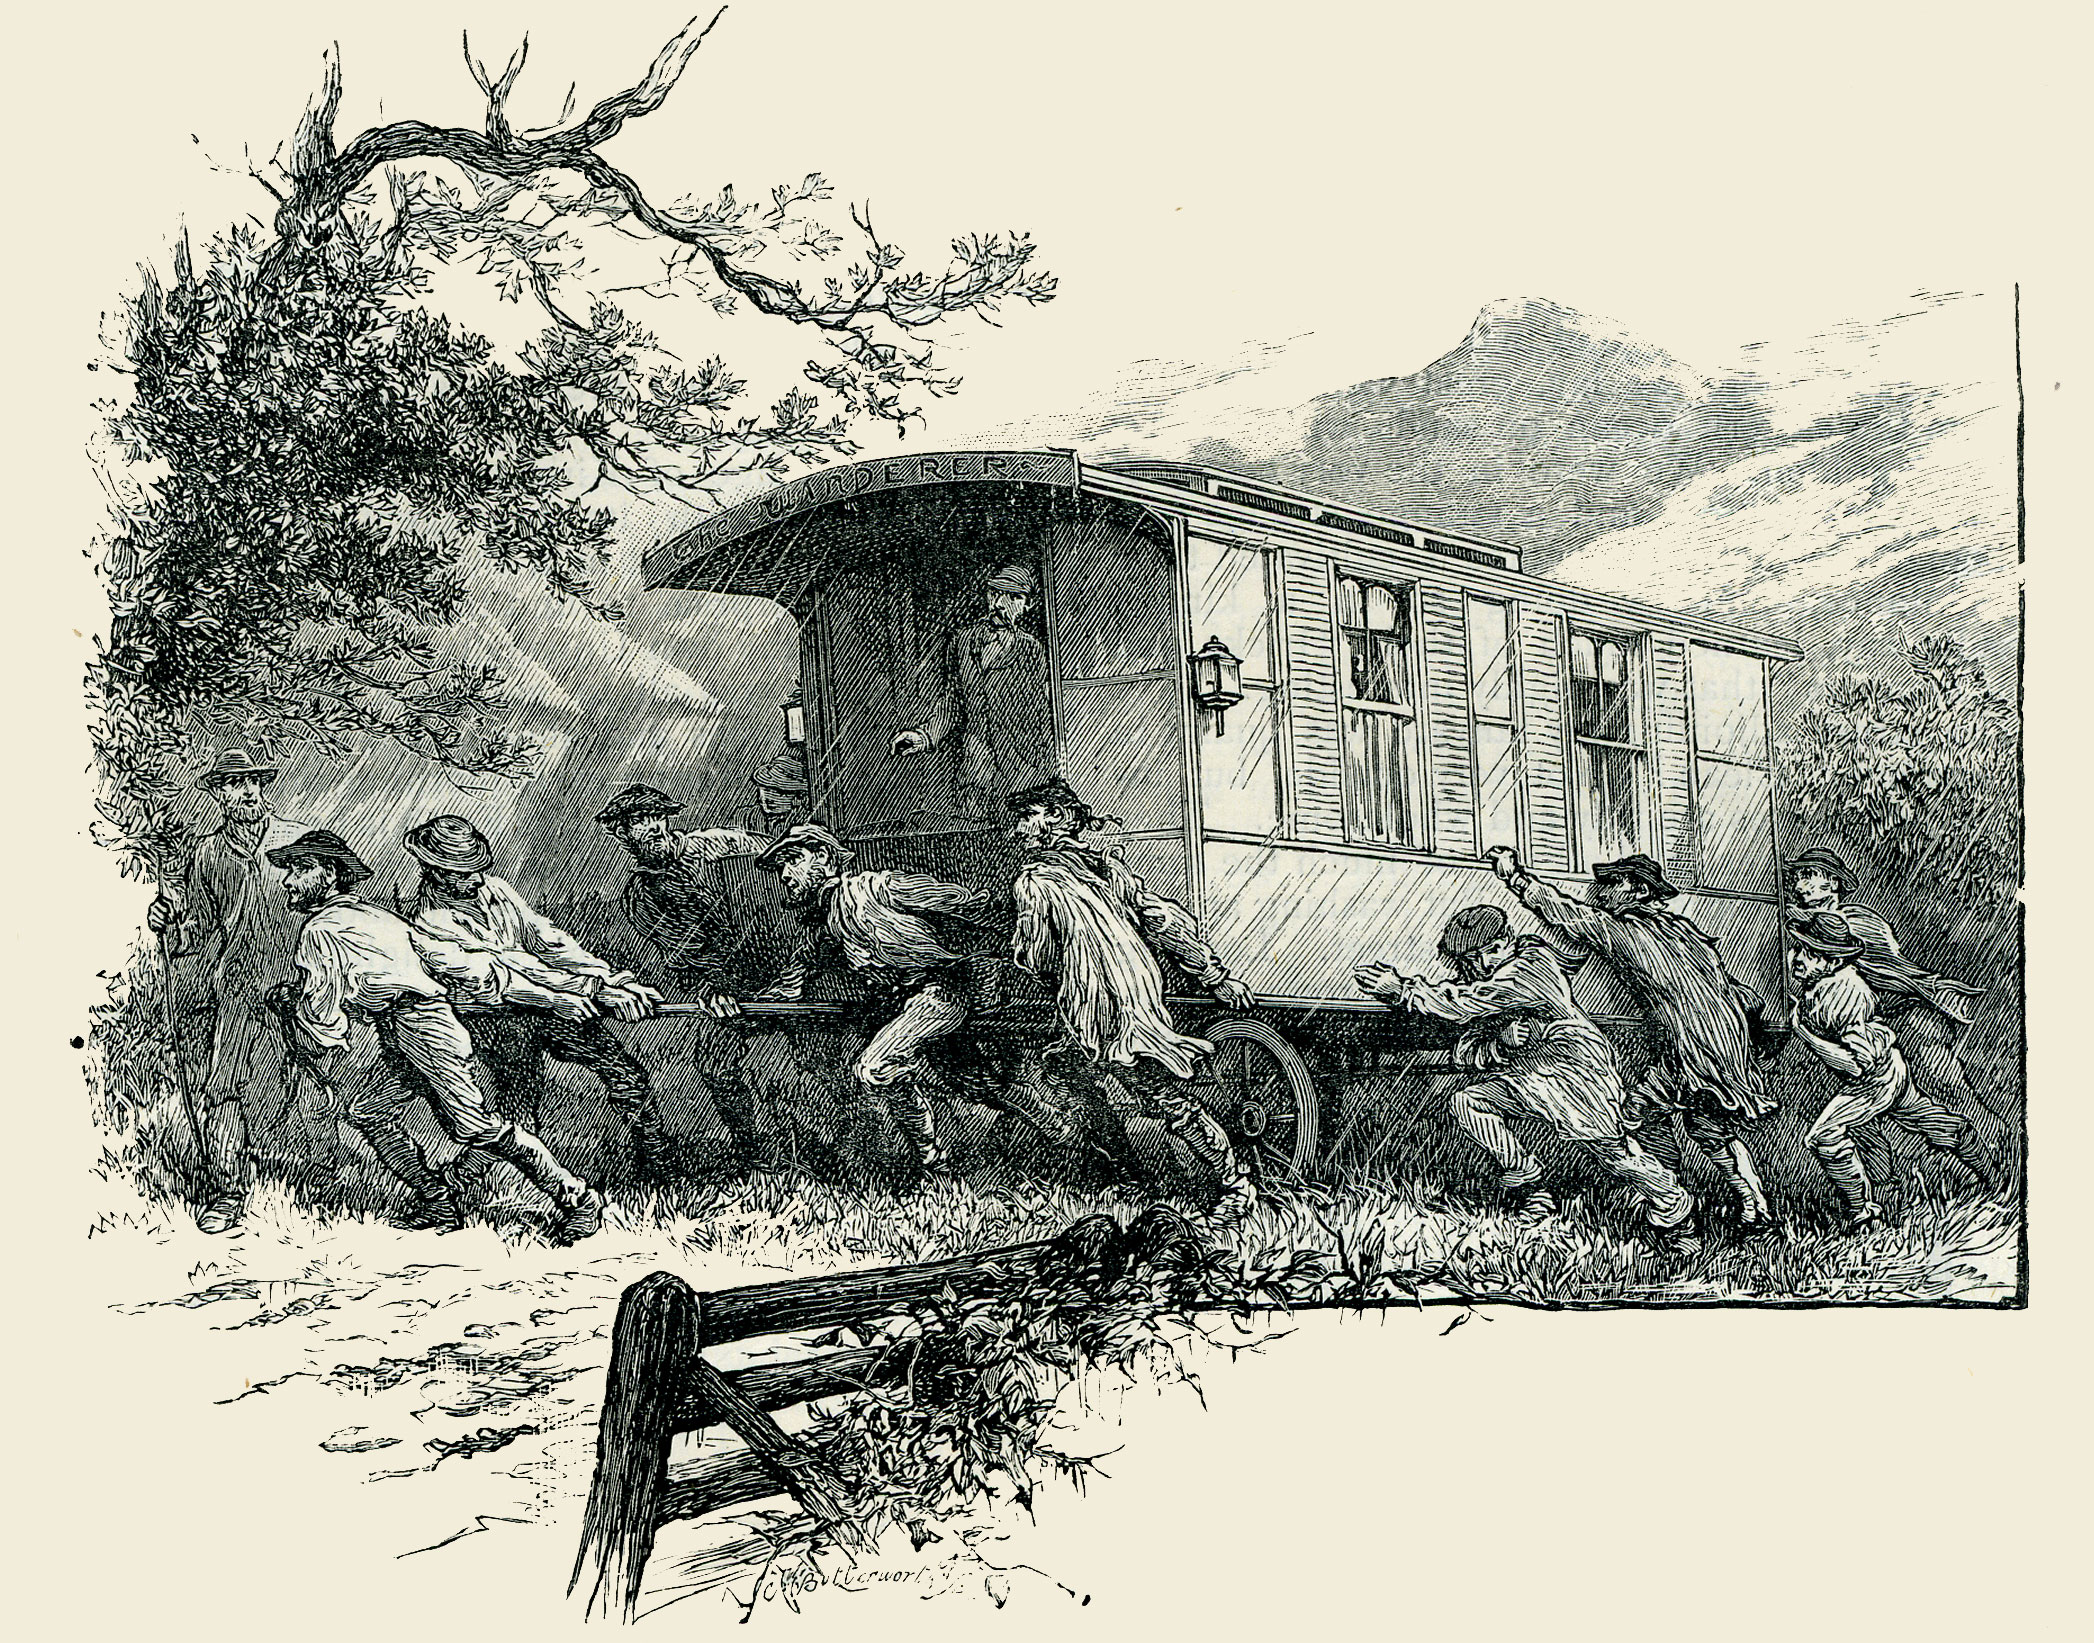 A caravan being pushed up a hill by a group of men